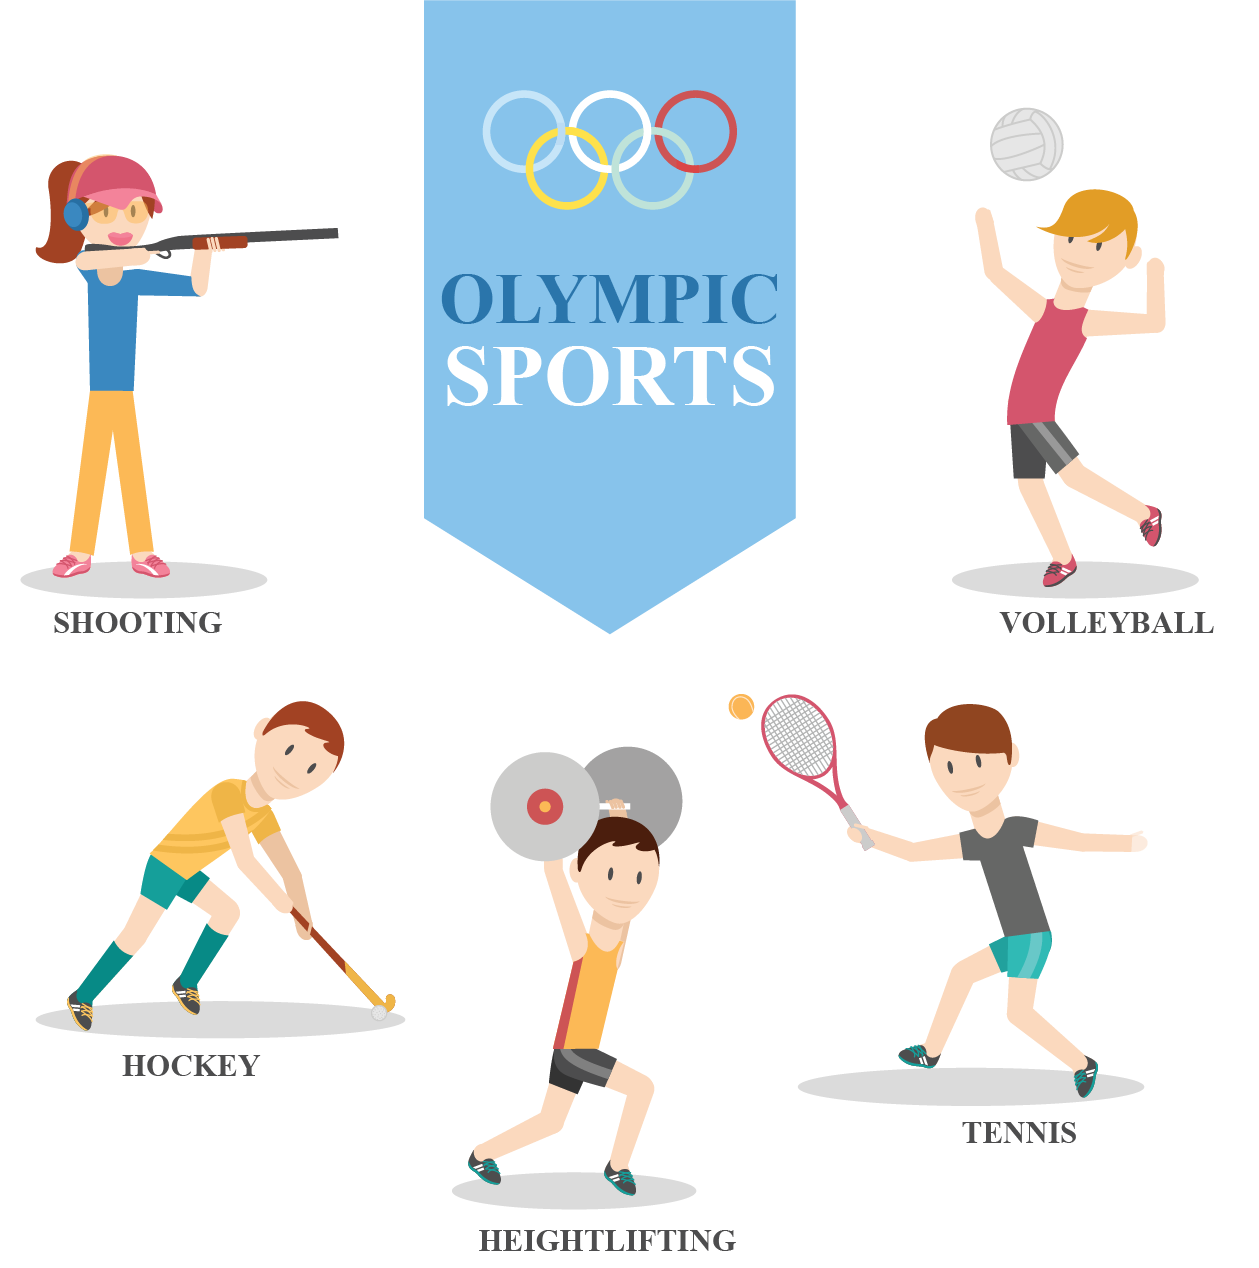 Summer Olympics are held after every 4 years